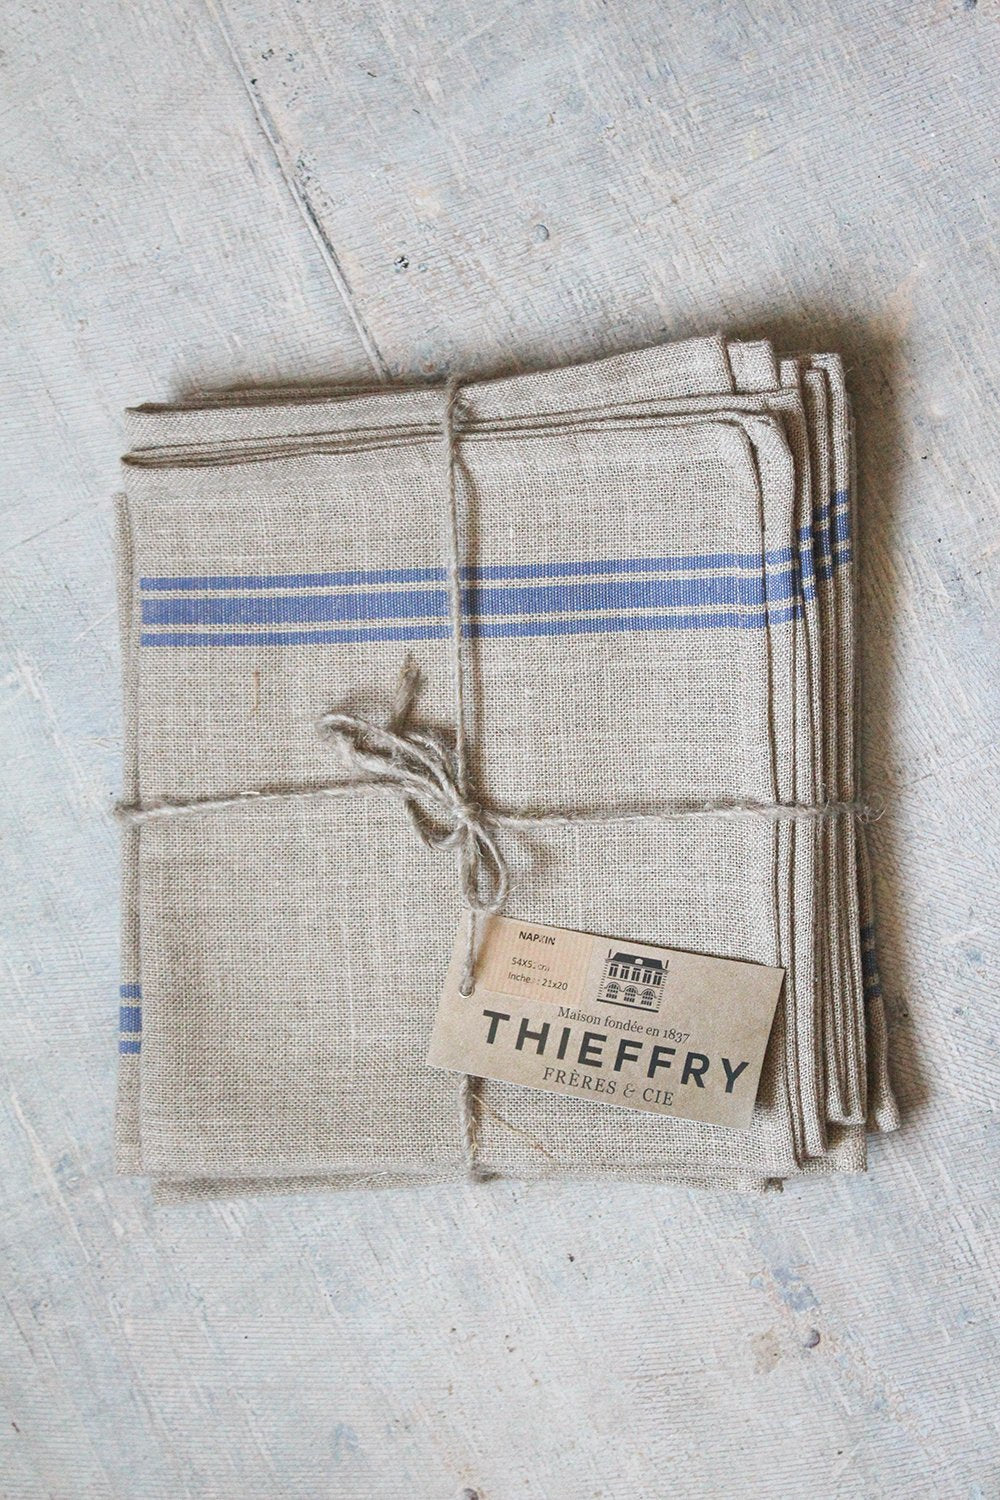 Thieffry Blue Monogramme Linen Dish Towel (28